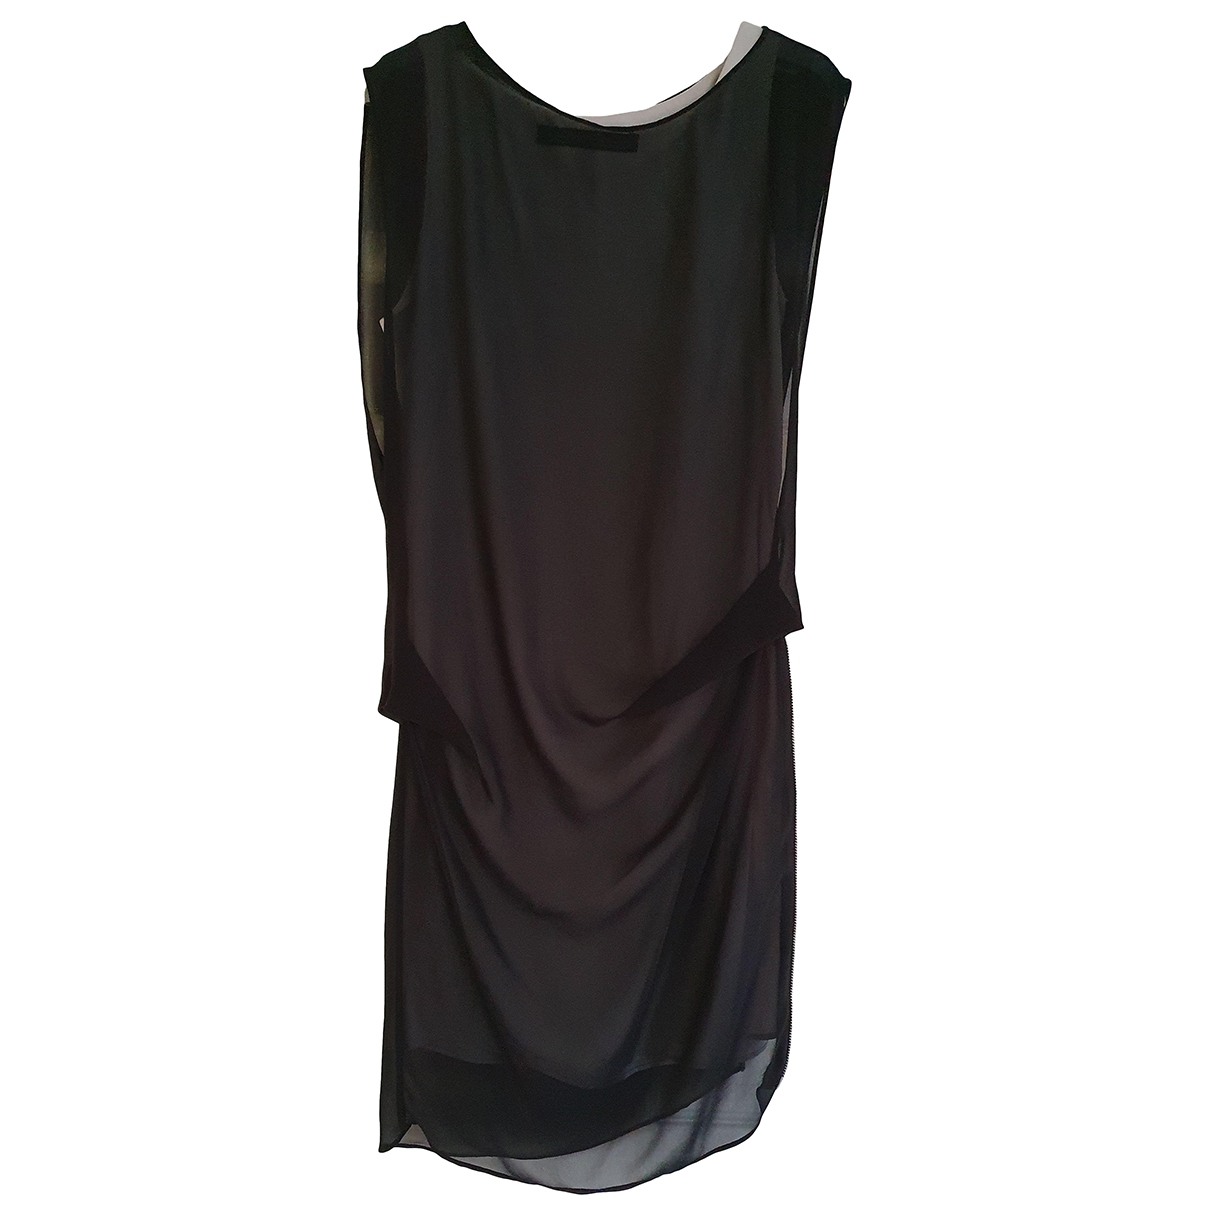 All Saints \N Black dress for Women 4 UK